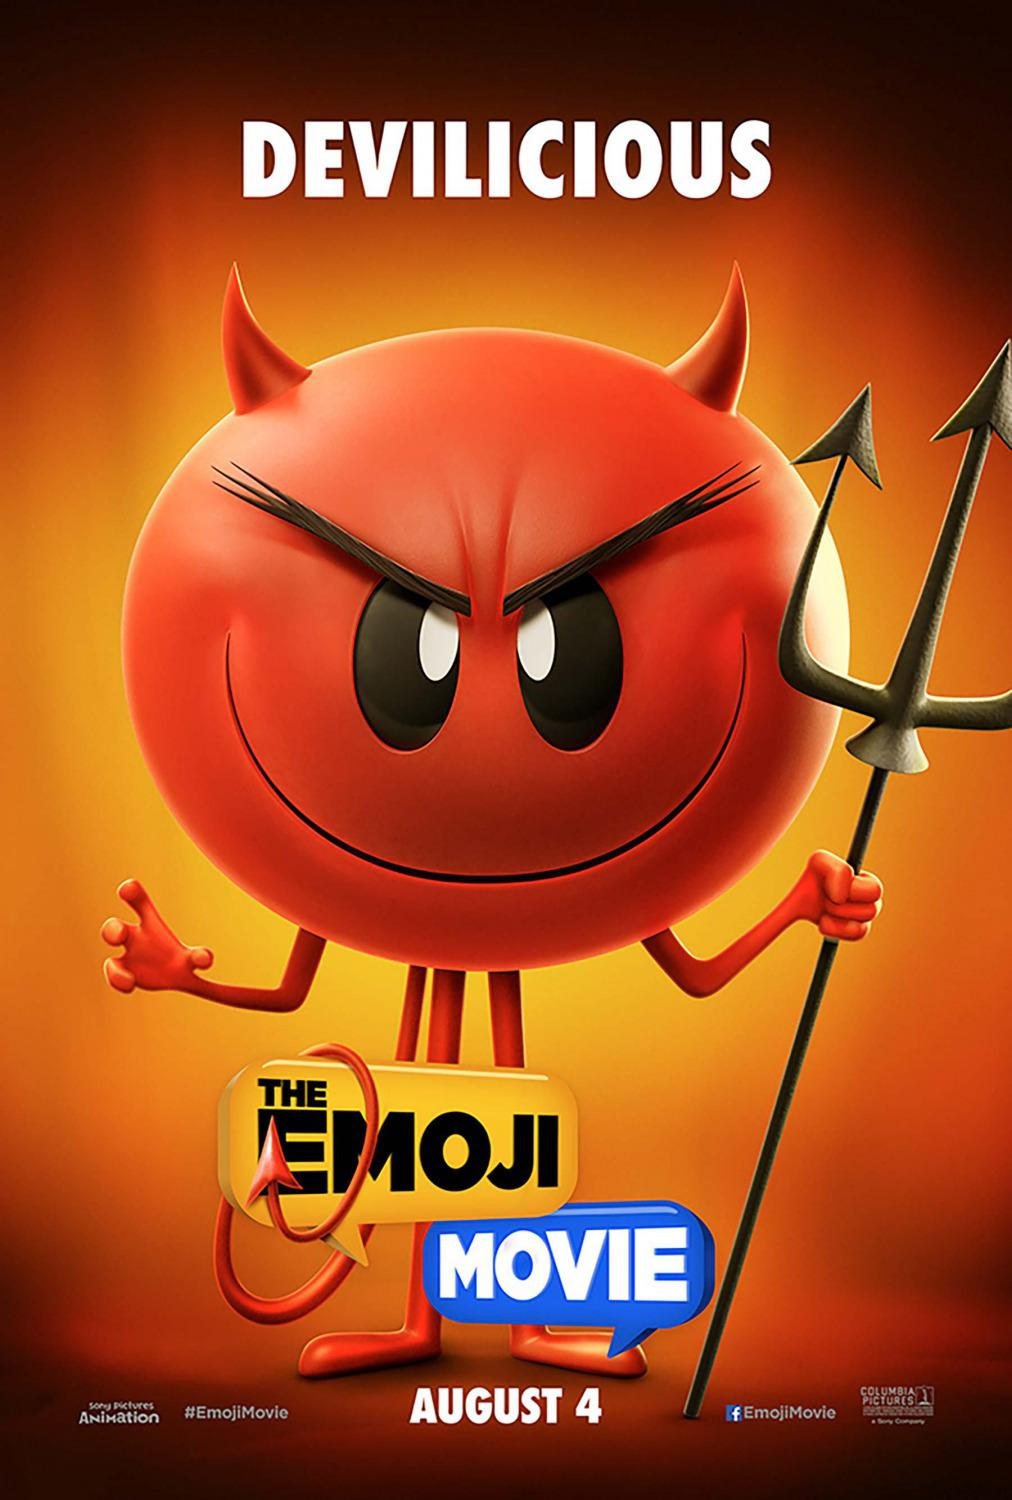 Emoji - Emoticon animated movie - Devilicious - poster